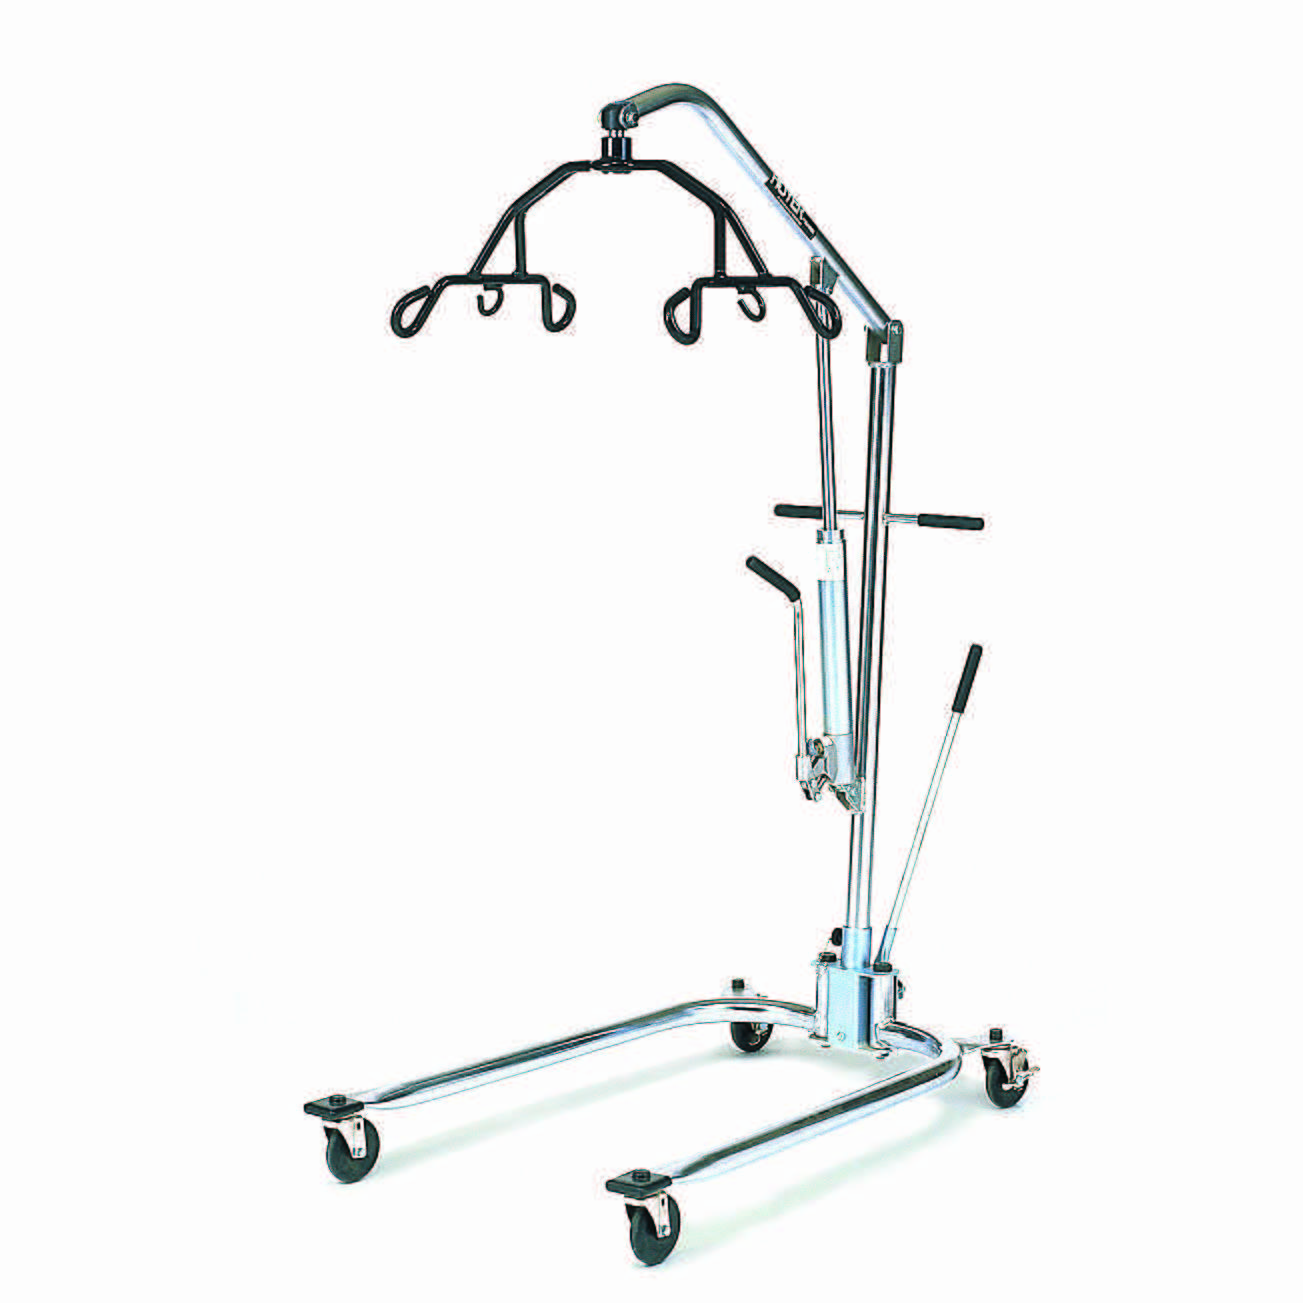 Hoyer 6-point chrome hydraulic patient lift